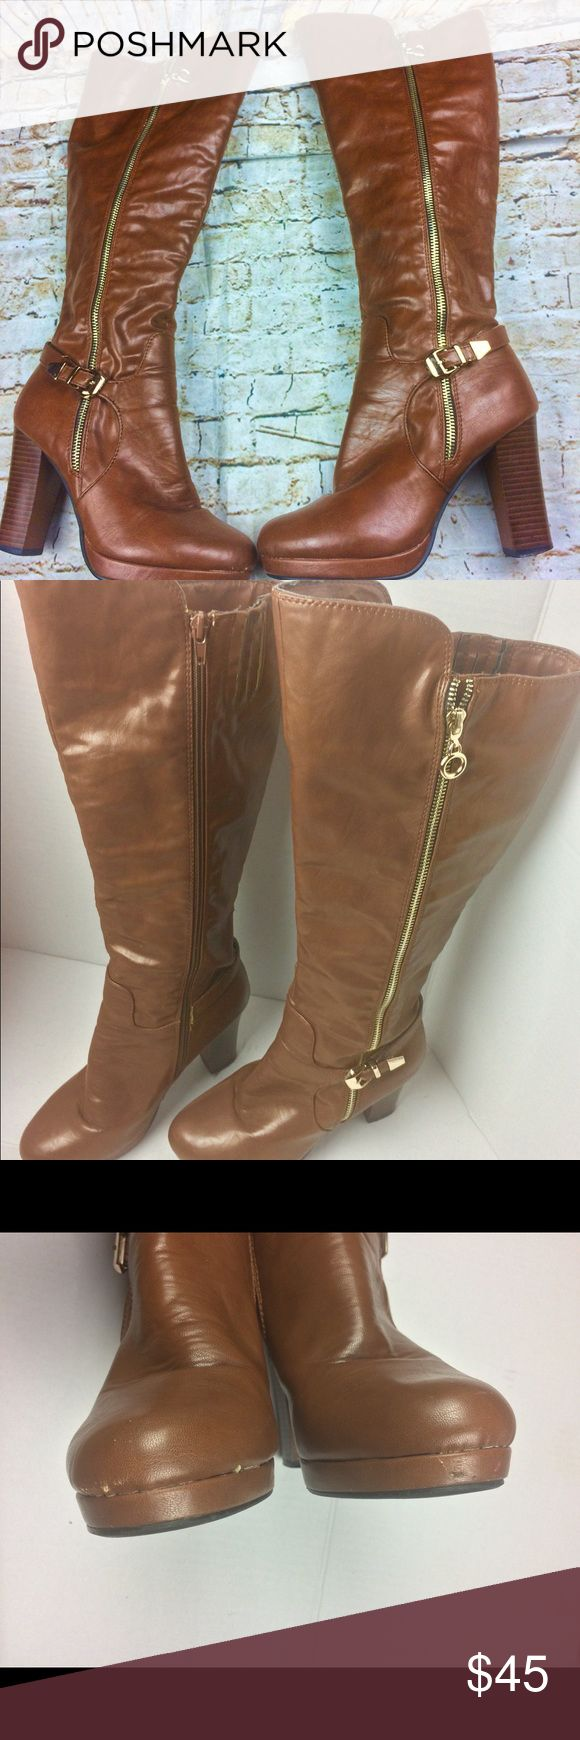 Henry Ferrera New York Knee High Boot Lopez Size 7 Henry Ferrera New York knee high heel boots . Lopez 400 style cognac color . Woman's Size 7 zips up on one side with a gold colored zipper and Buckle on the other side . There is some peeling on the front sole a small spot on the back and top interior as pictured .The material is Synthetic PU . The heels are 4 inches high Henry Ferrera New York Shoes Heeled Boots